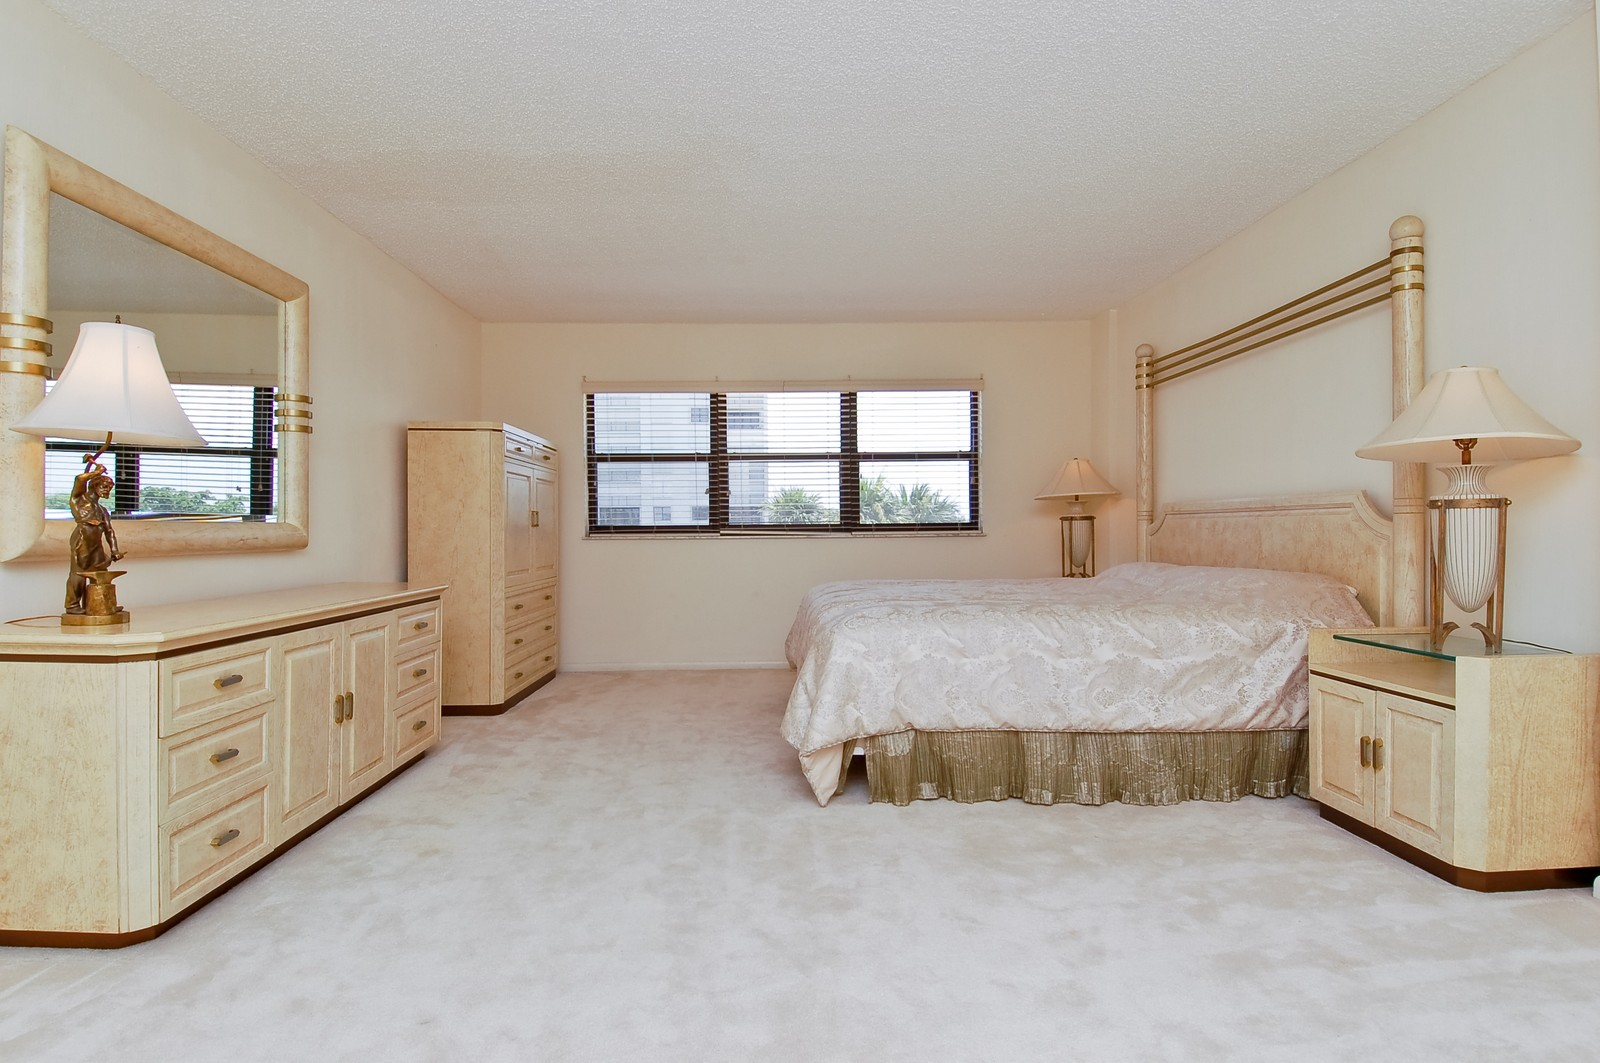 Real Estate Photography - 4605 S Ocean Blvd, Unit 3B, Highland Beach, FL, 33487 - 2nd Bedroom